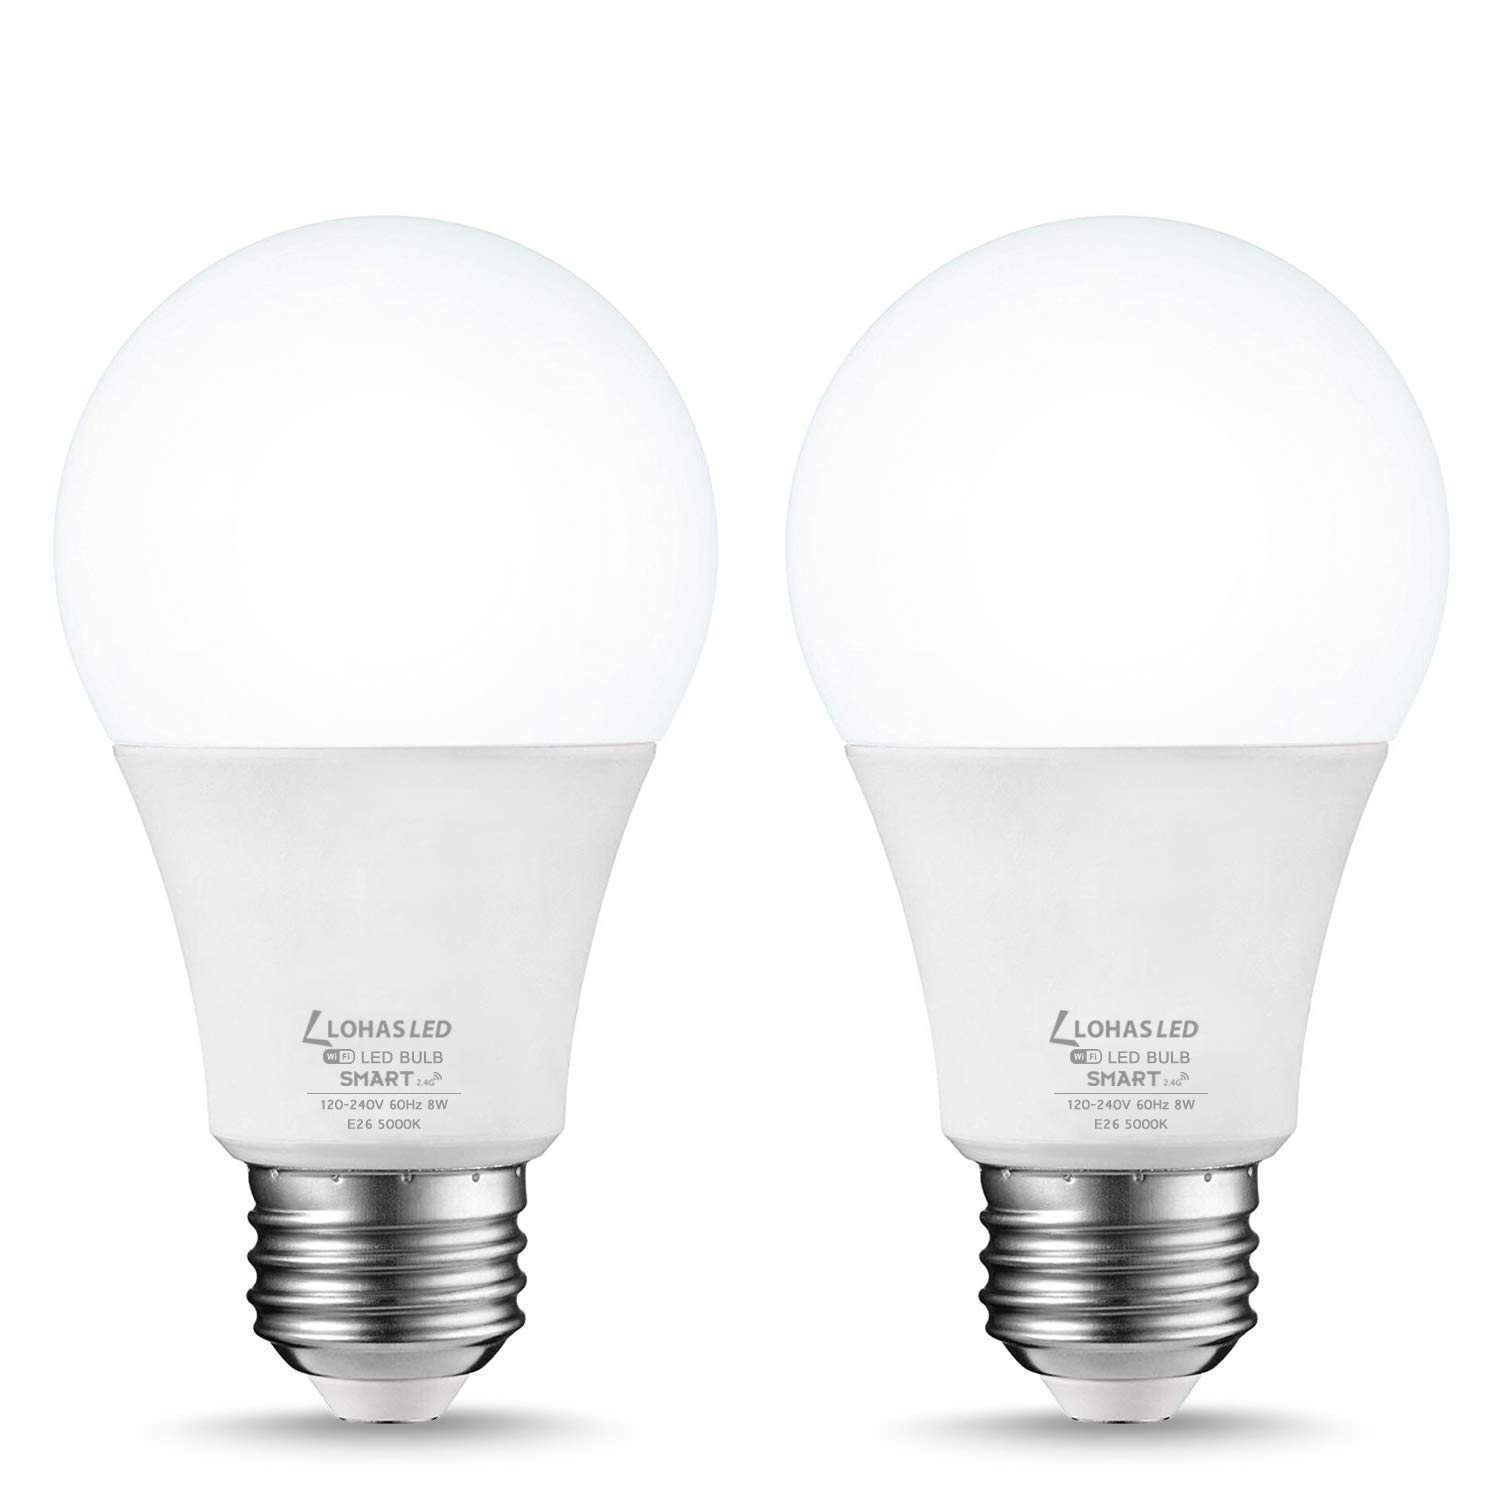 LOHAS Smart Wifi LED Light Bulb, A19 Daylight Dimmable LED Bulb, 50W(8W) Equivalent, Compatible with Alexa, Google Home Assistant, Remote Control by Smart Phone, E26 Base, No Hub Required, 2 Pack